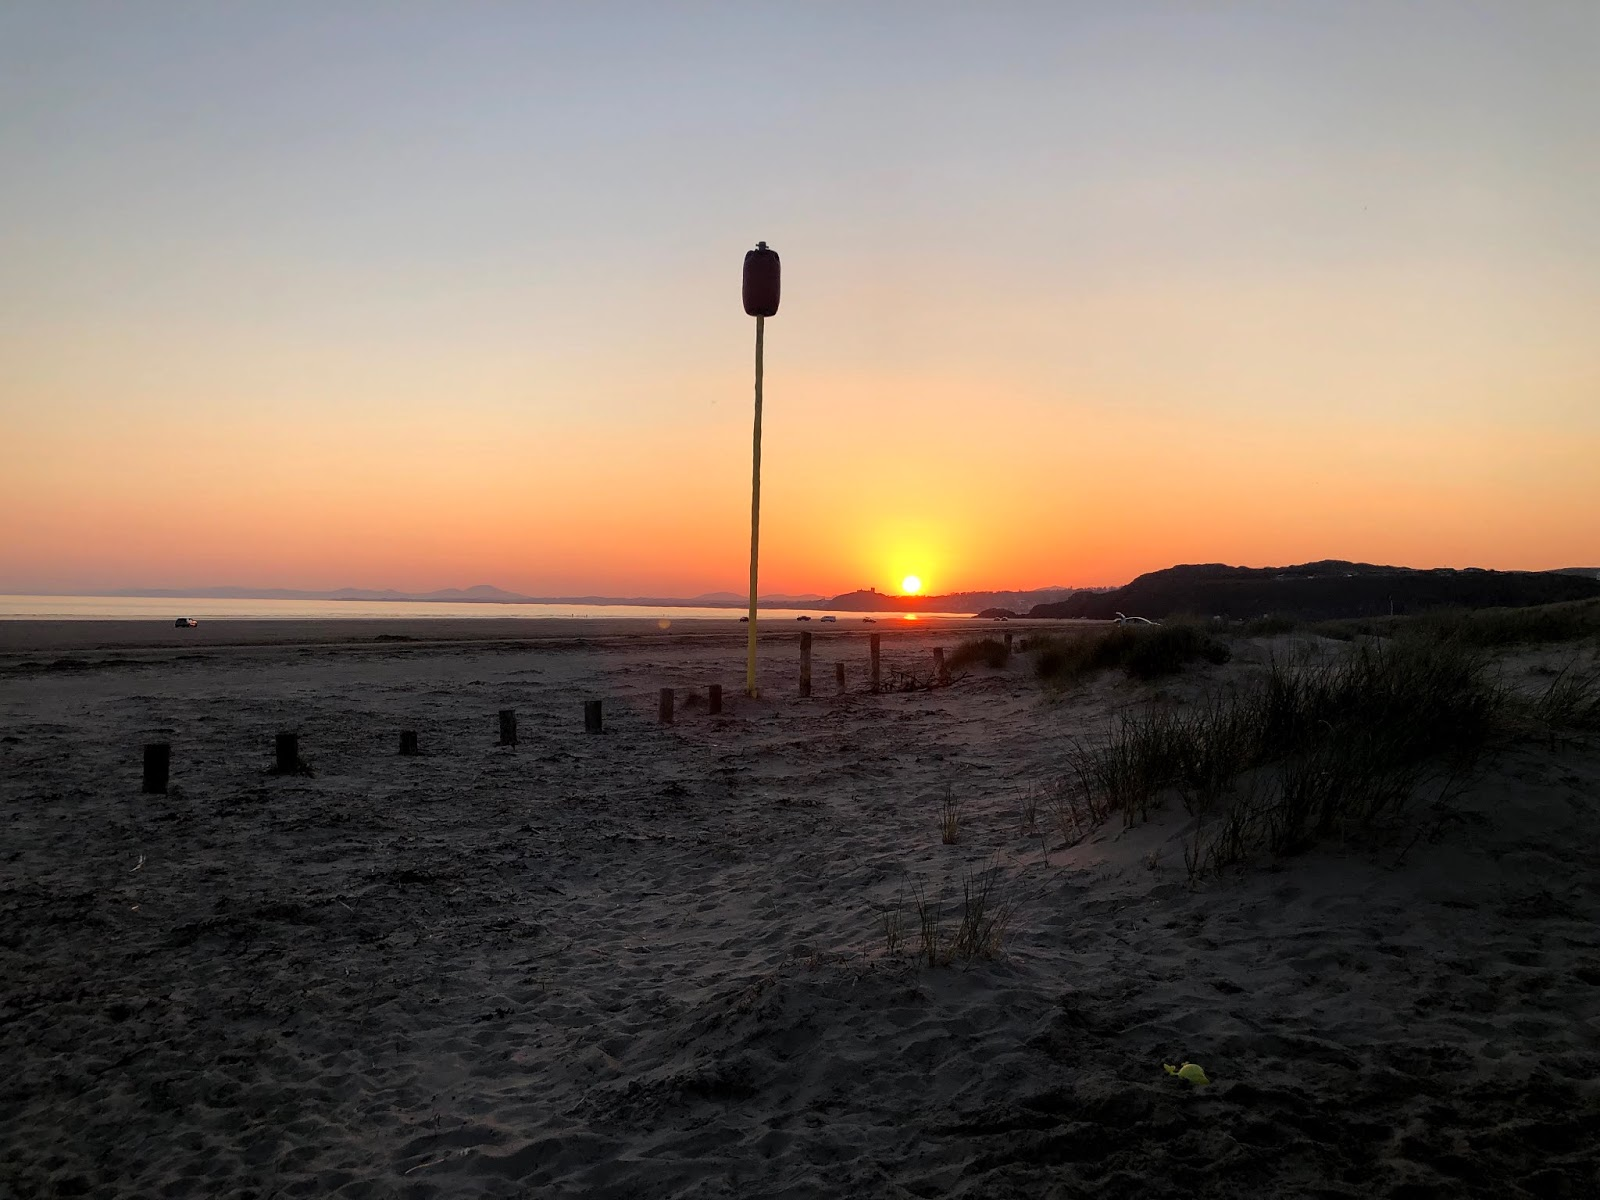 blackrock sands beach sunset